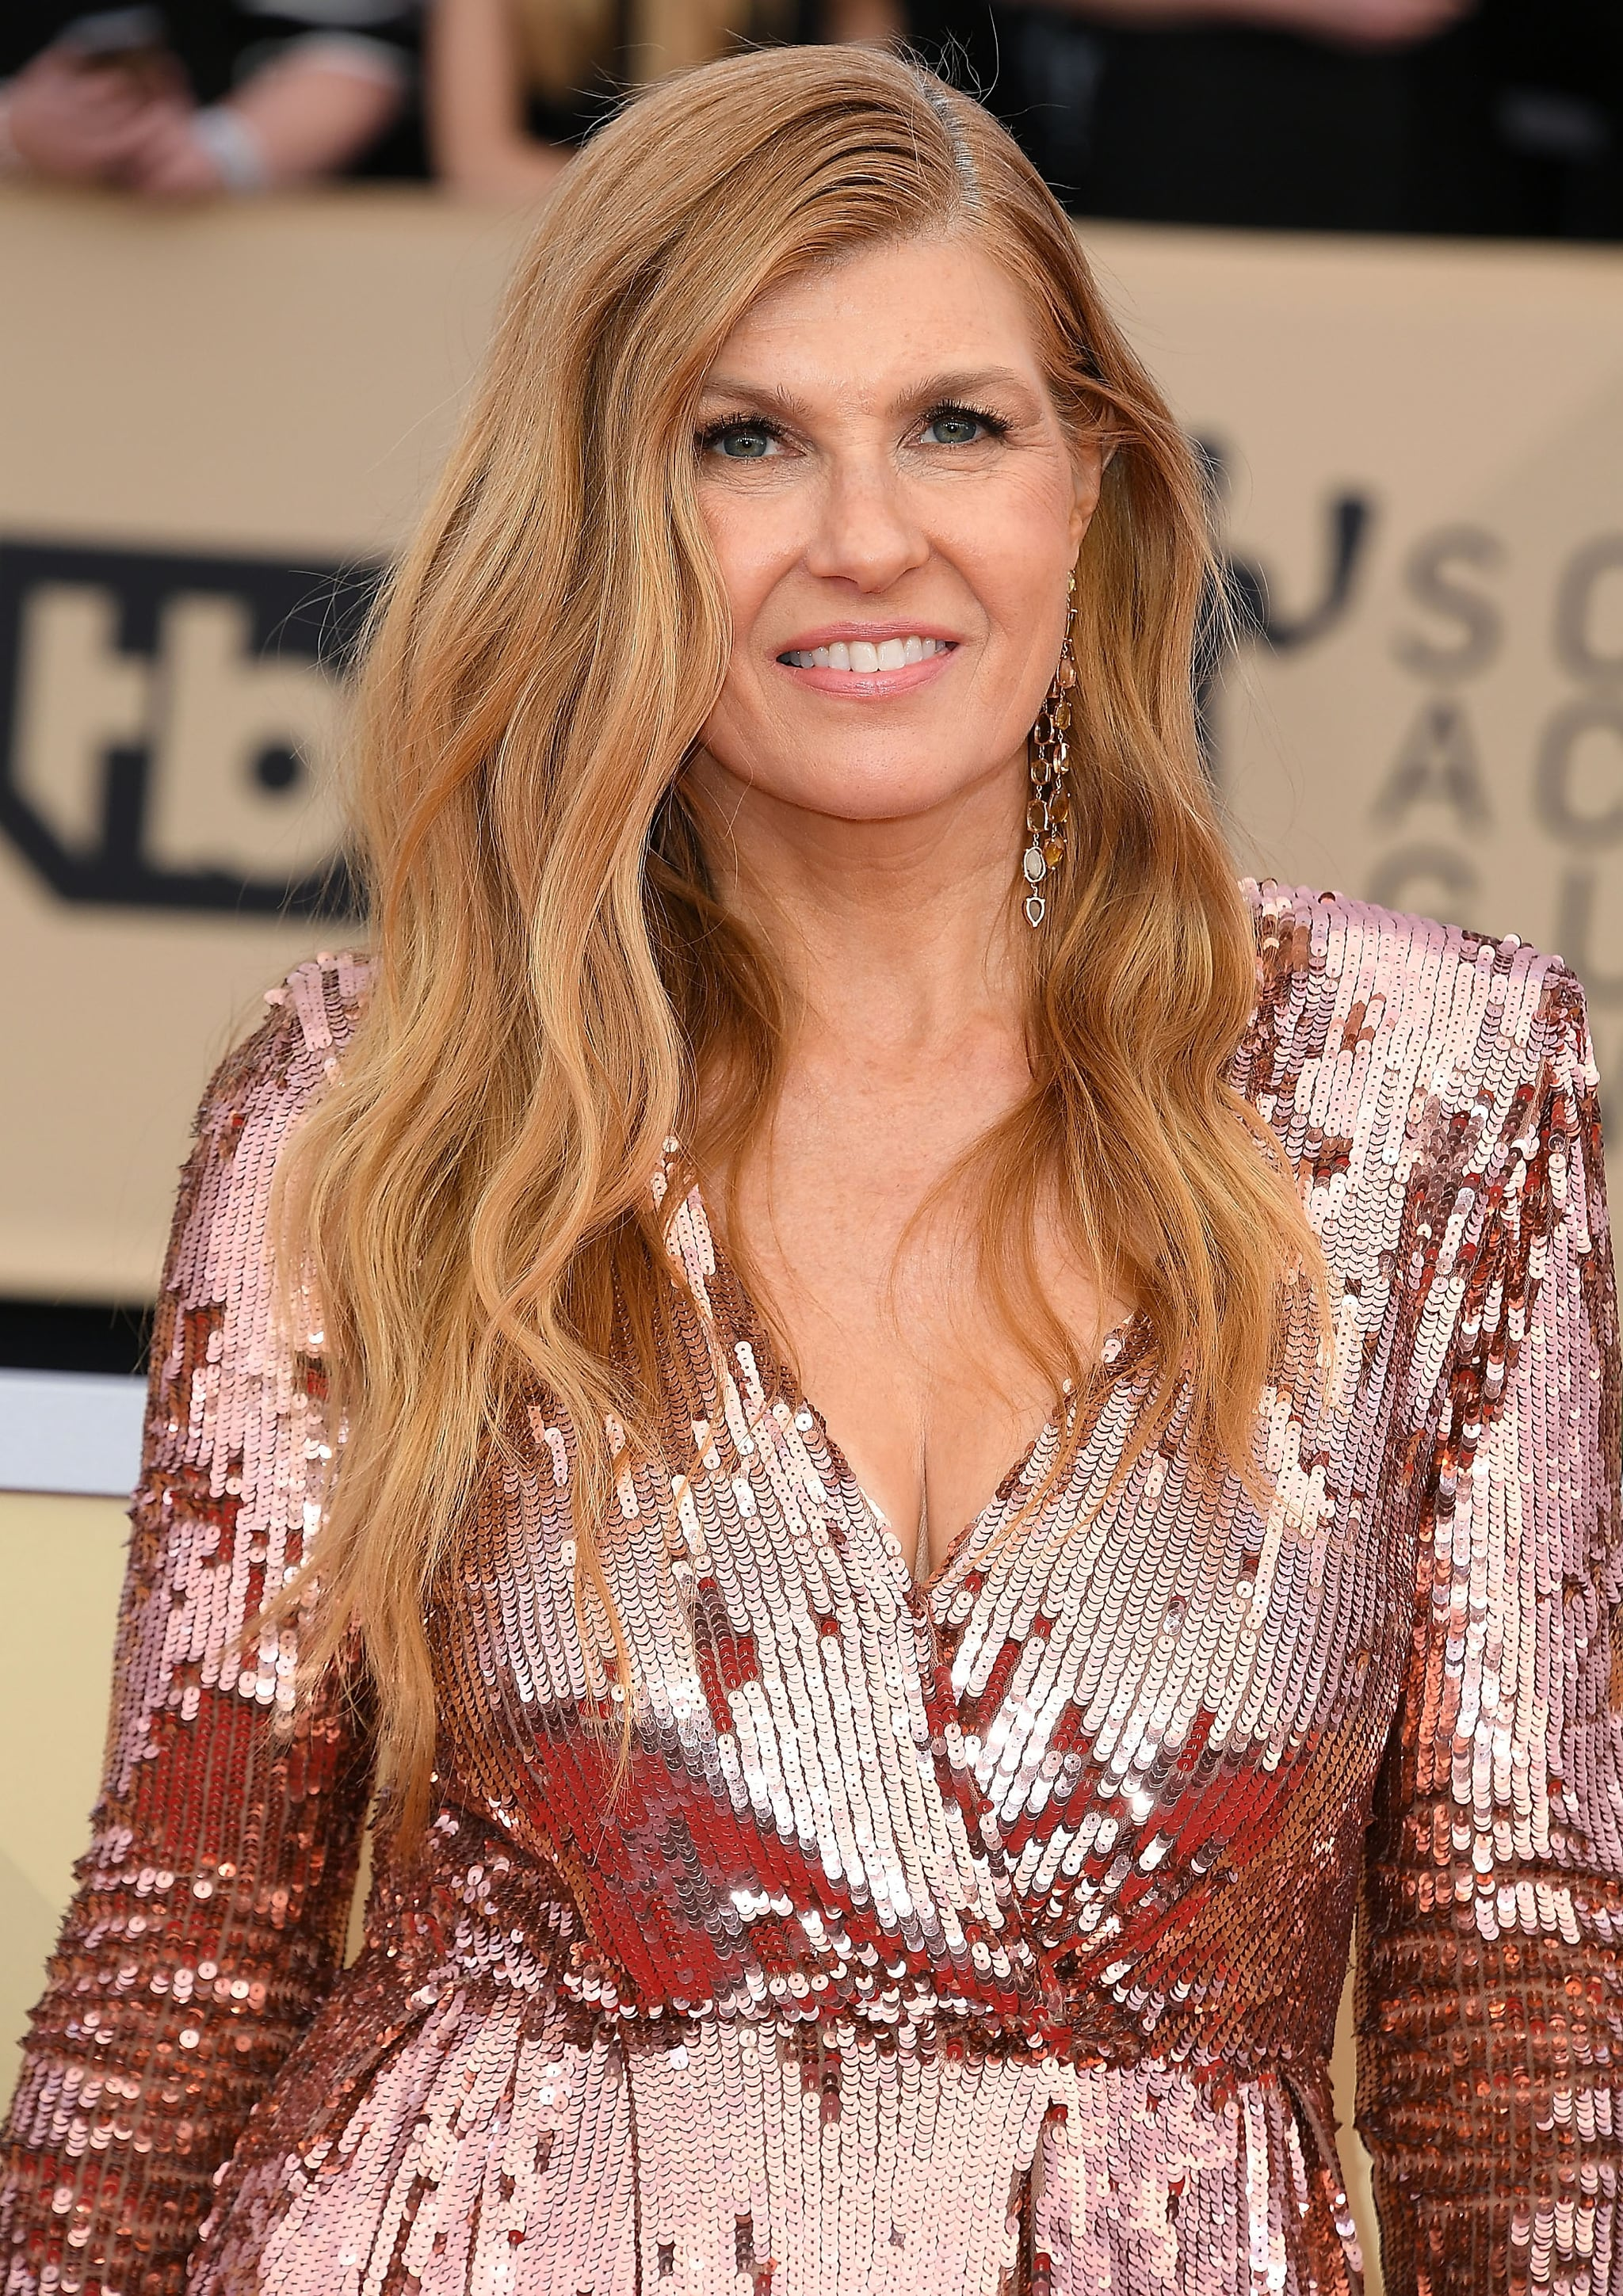 LOS ANGELES, CA - JANUARY 21:  Connie Britton arrives at the 24th Annual Screen Actors-Guild Awards at The Shrine Auditorium on January 21, 2018 in Los Angeles, California.  (Photo by Steve Granitz/WireImage)